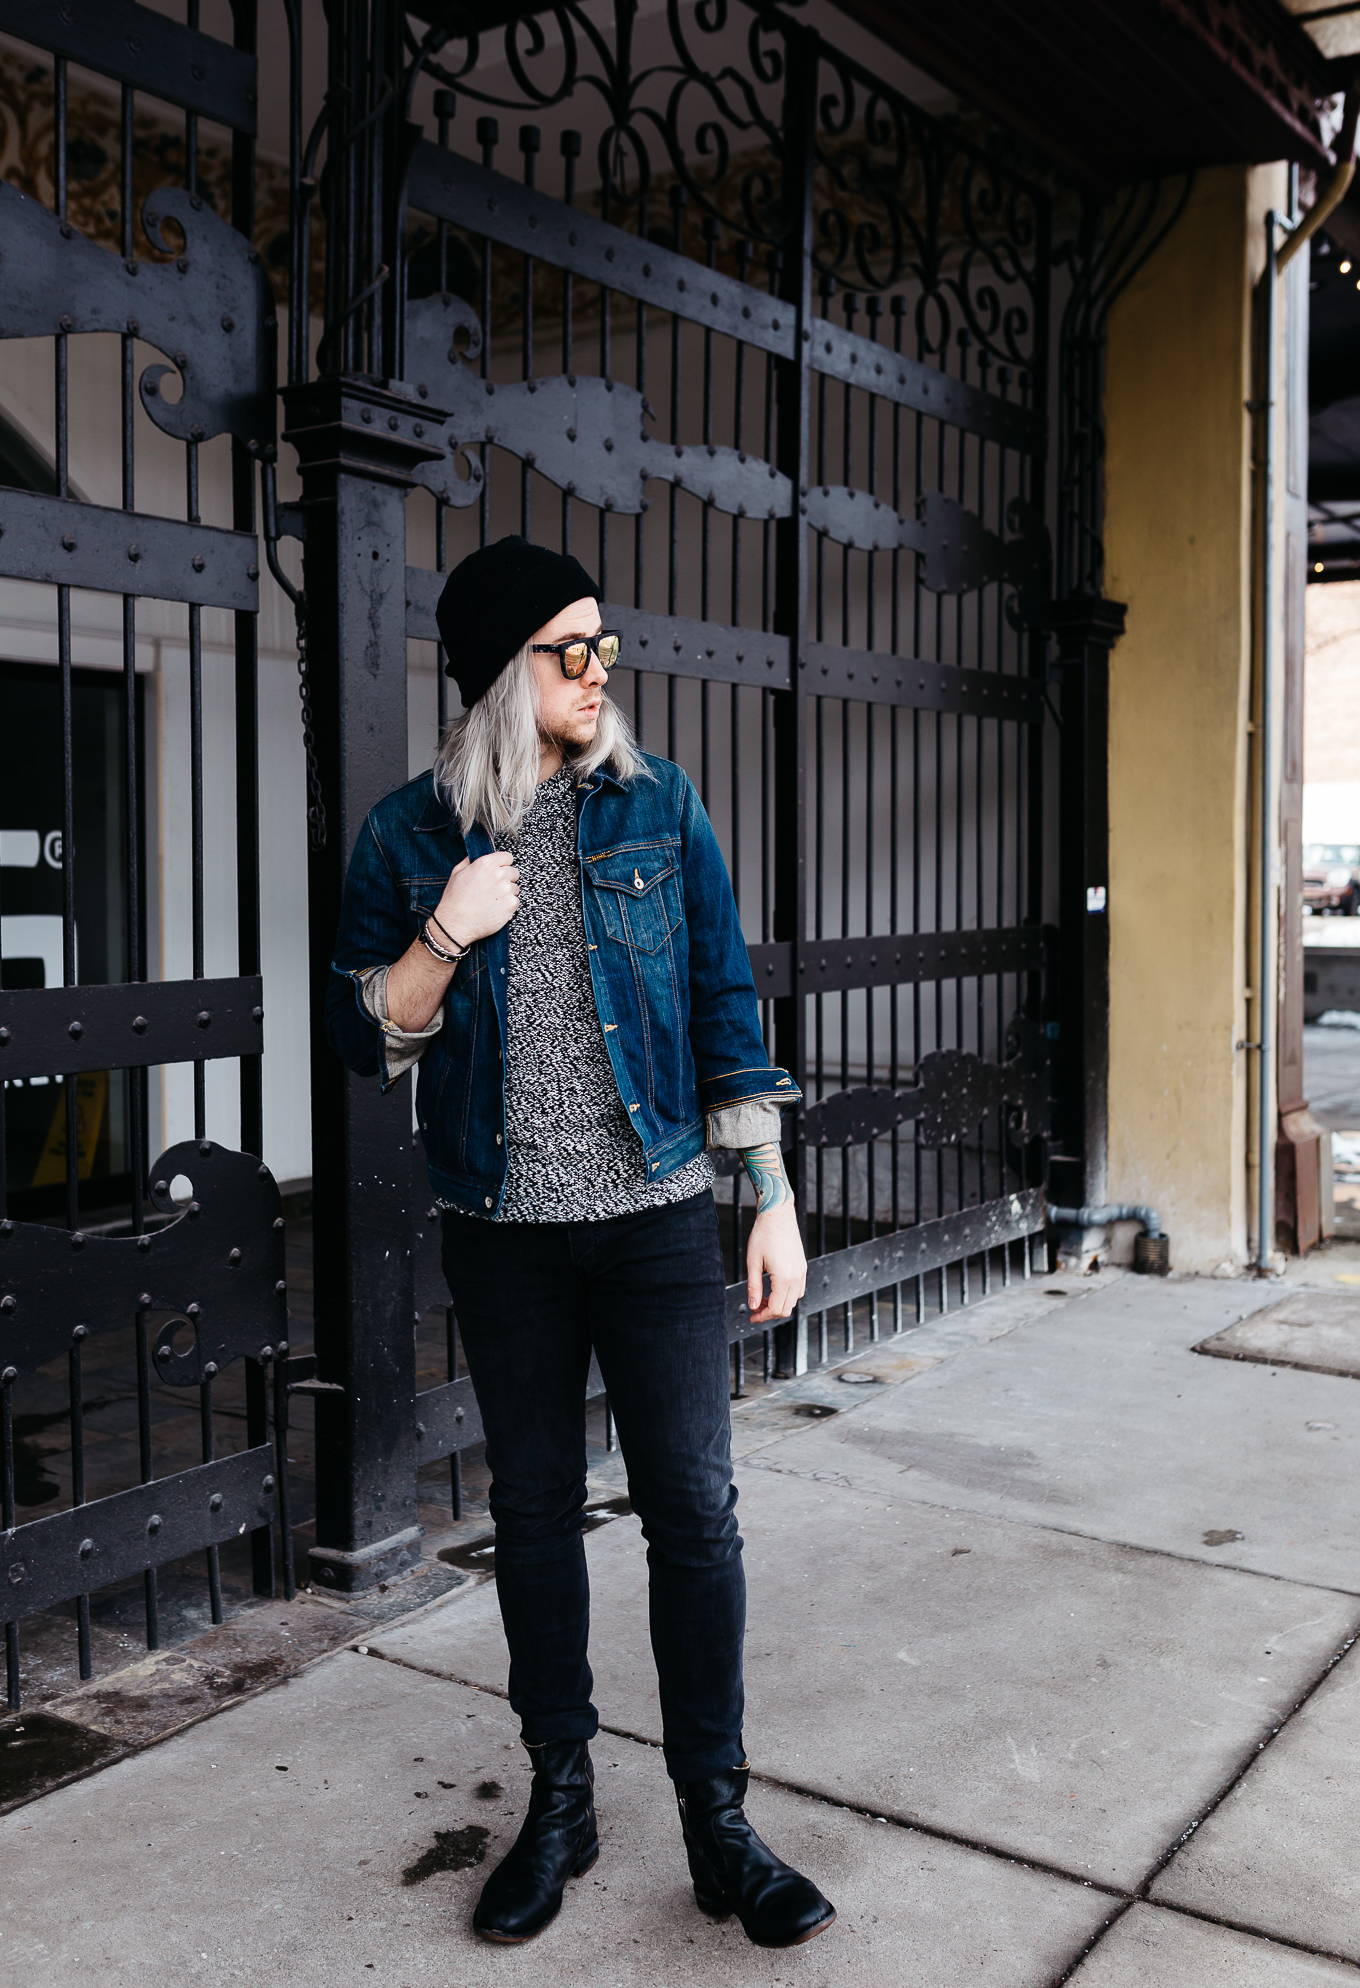 mens fashion blogger, mens denim jacket, how to wear denim jacket, how to dress for winter in a denim jacket, mens style blogger